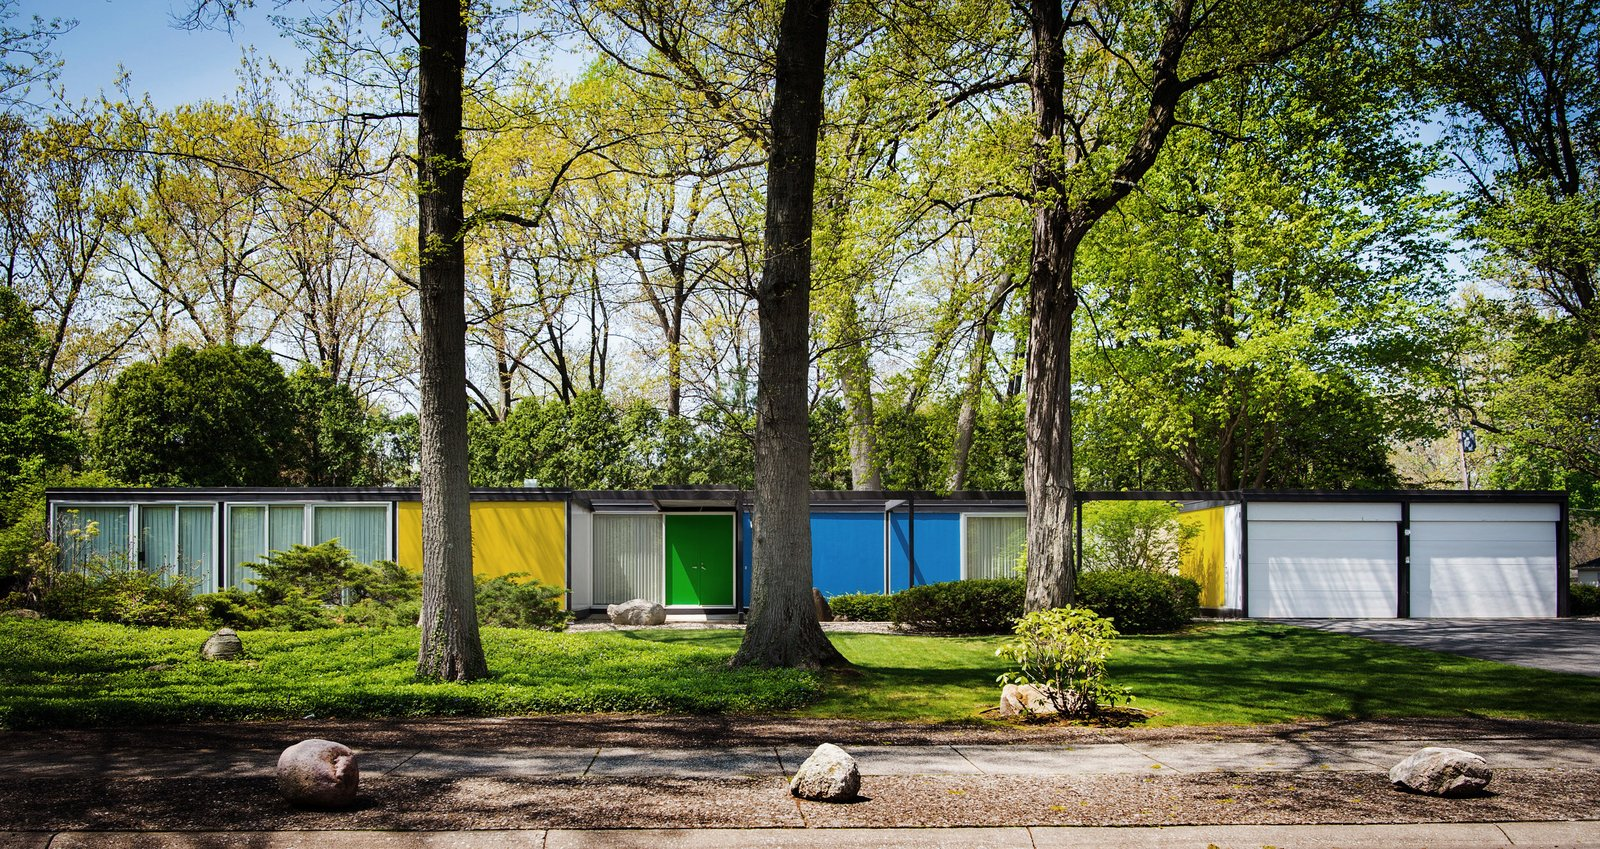 Built with a steel frame, the Frost House features panels of styrofoam between aluminum sheets for the exterior walls and styrofoam between plywood for the roof and floors. Bold, primary colors accentuate its geometric form.   Shortly after Karen Valentine and Bob Coscarelli purchased the home in 2016, they began to unearth nuggets of information about its pedigree. Their realtor had provided a brochure that identified the prefab as designed by architect Emil Tessin for the now-defunct Alside Homes Corporation based out of Akron, Ohio, which had held a patent for the structure's aluminum paneling. Their new neighbors provided a stack of Alside Homes sales materials, floor plans of various models, and even a script that had been written for salespeople during home tours. They determined that the Frost House had been a sales model for the company, and that Tessin had been the son of Emil Albert Tessin, the legal guardian of Florence Knoll. Tagged: Exterior, House, Flat RoofLine, and Prefab Building Type.  Photo 10 of 10 in Dwell's Top 10 Prefabs of 2017 from A Rare Midcentury Prefab Looks Just Like it Did in 1958—Down to the Knoll and Paul McCobb Interiors